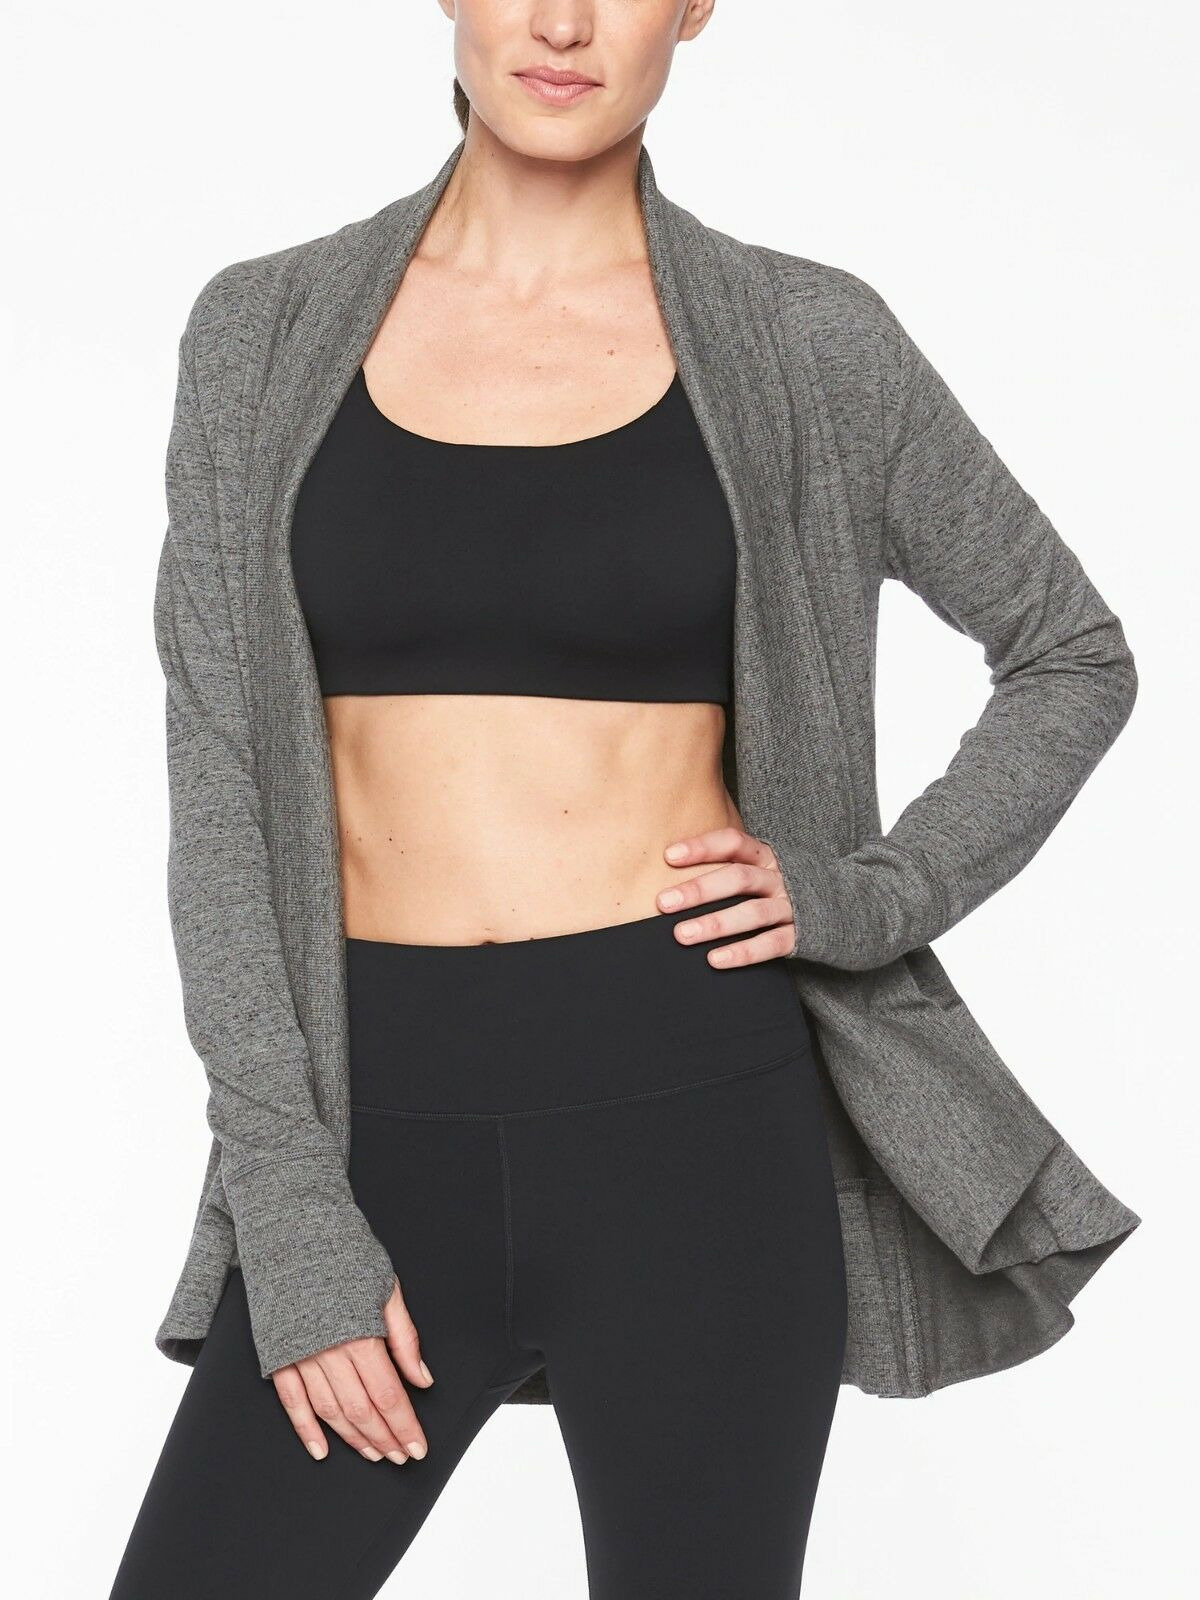 Athleta Pranayama Wrap, Charcoal Heather Heather Heather Nep SIZE L    N0208 98ca1a